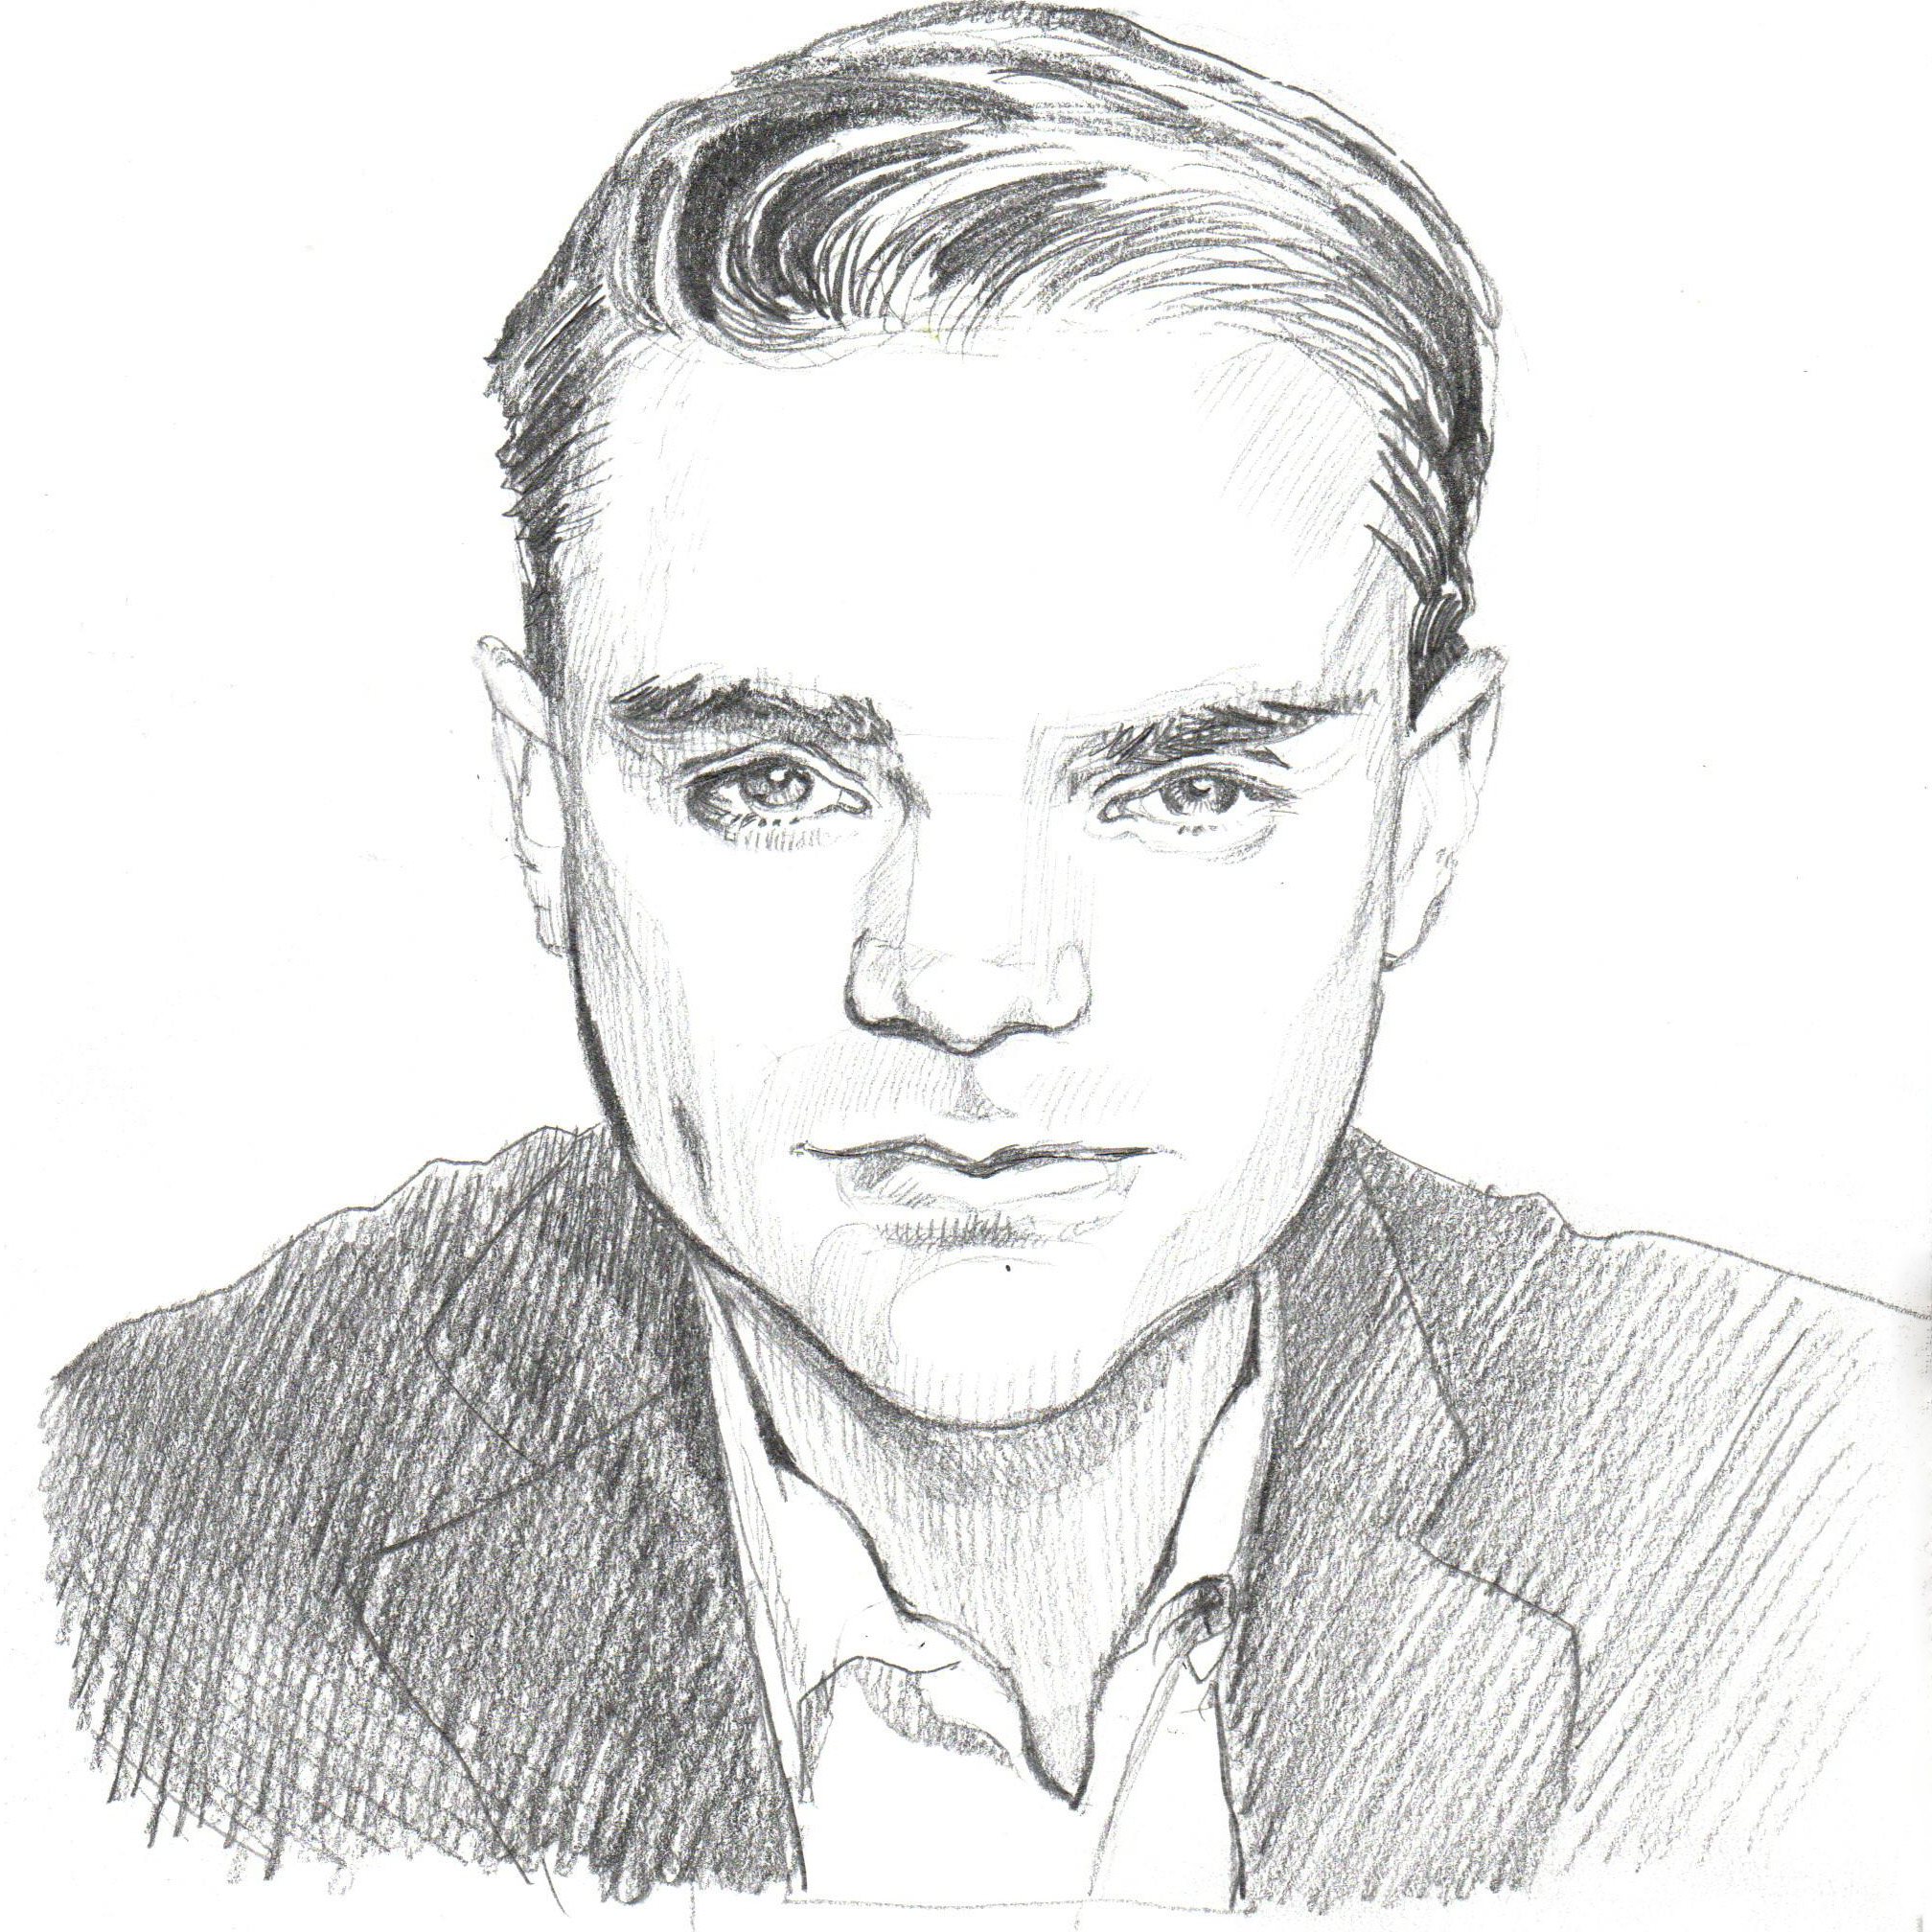 Ben Shapiro as seen by the Right